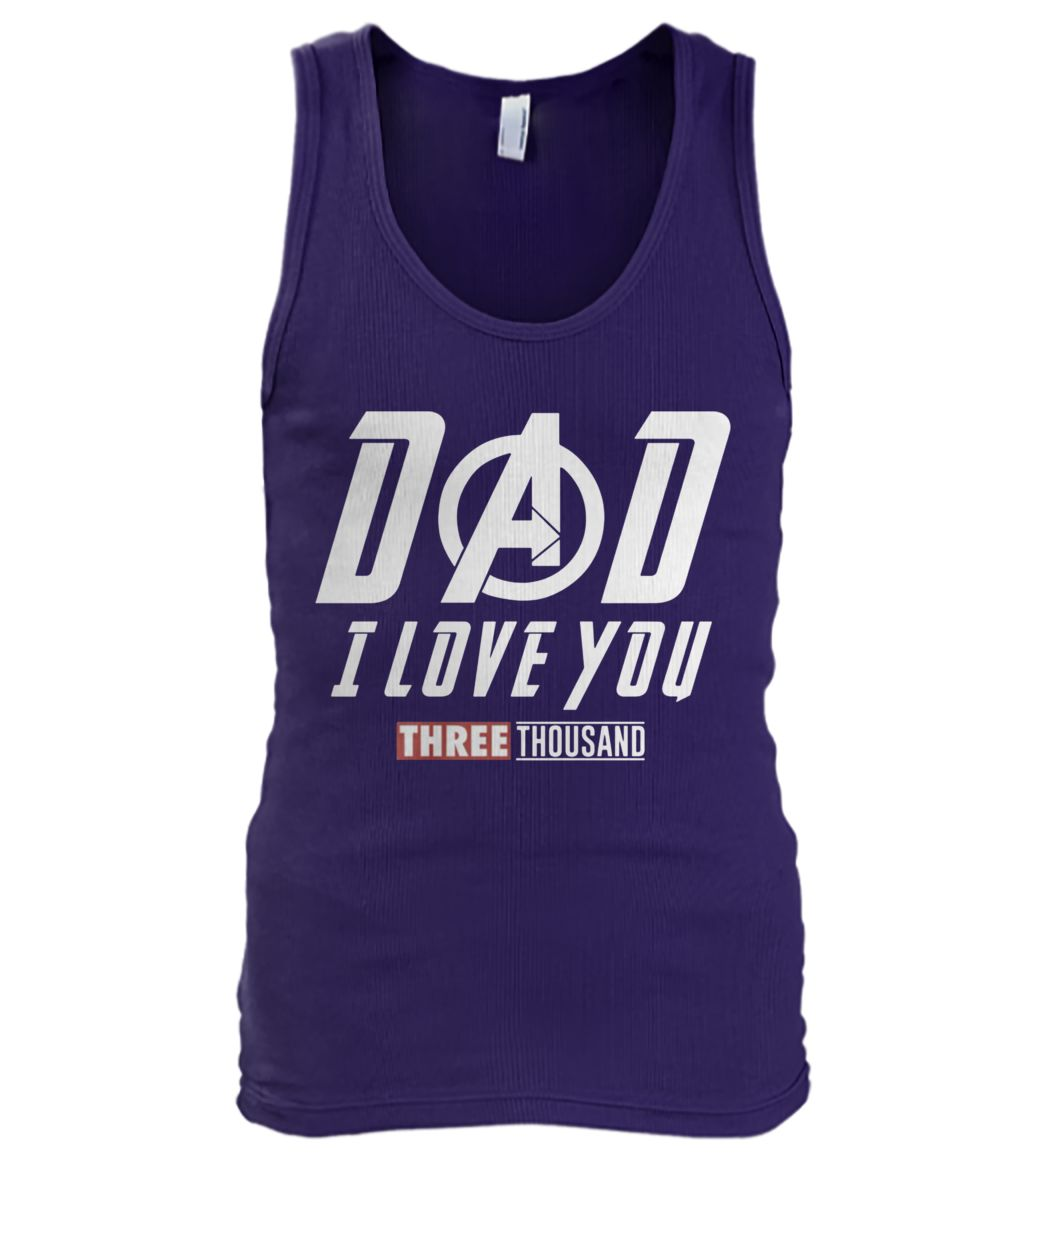 Endgame dad I love you three thousand men's tank top